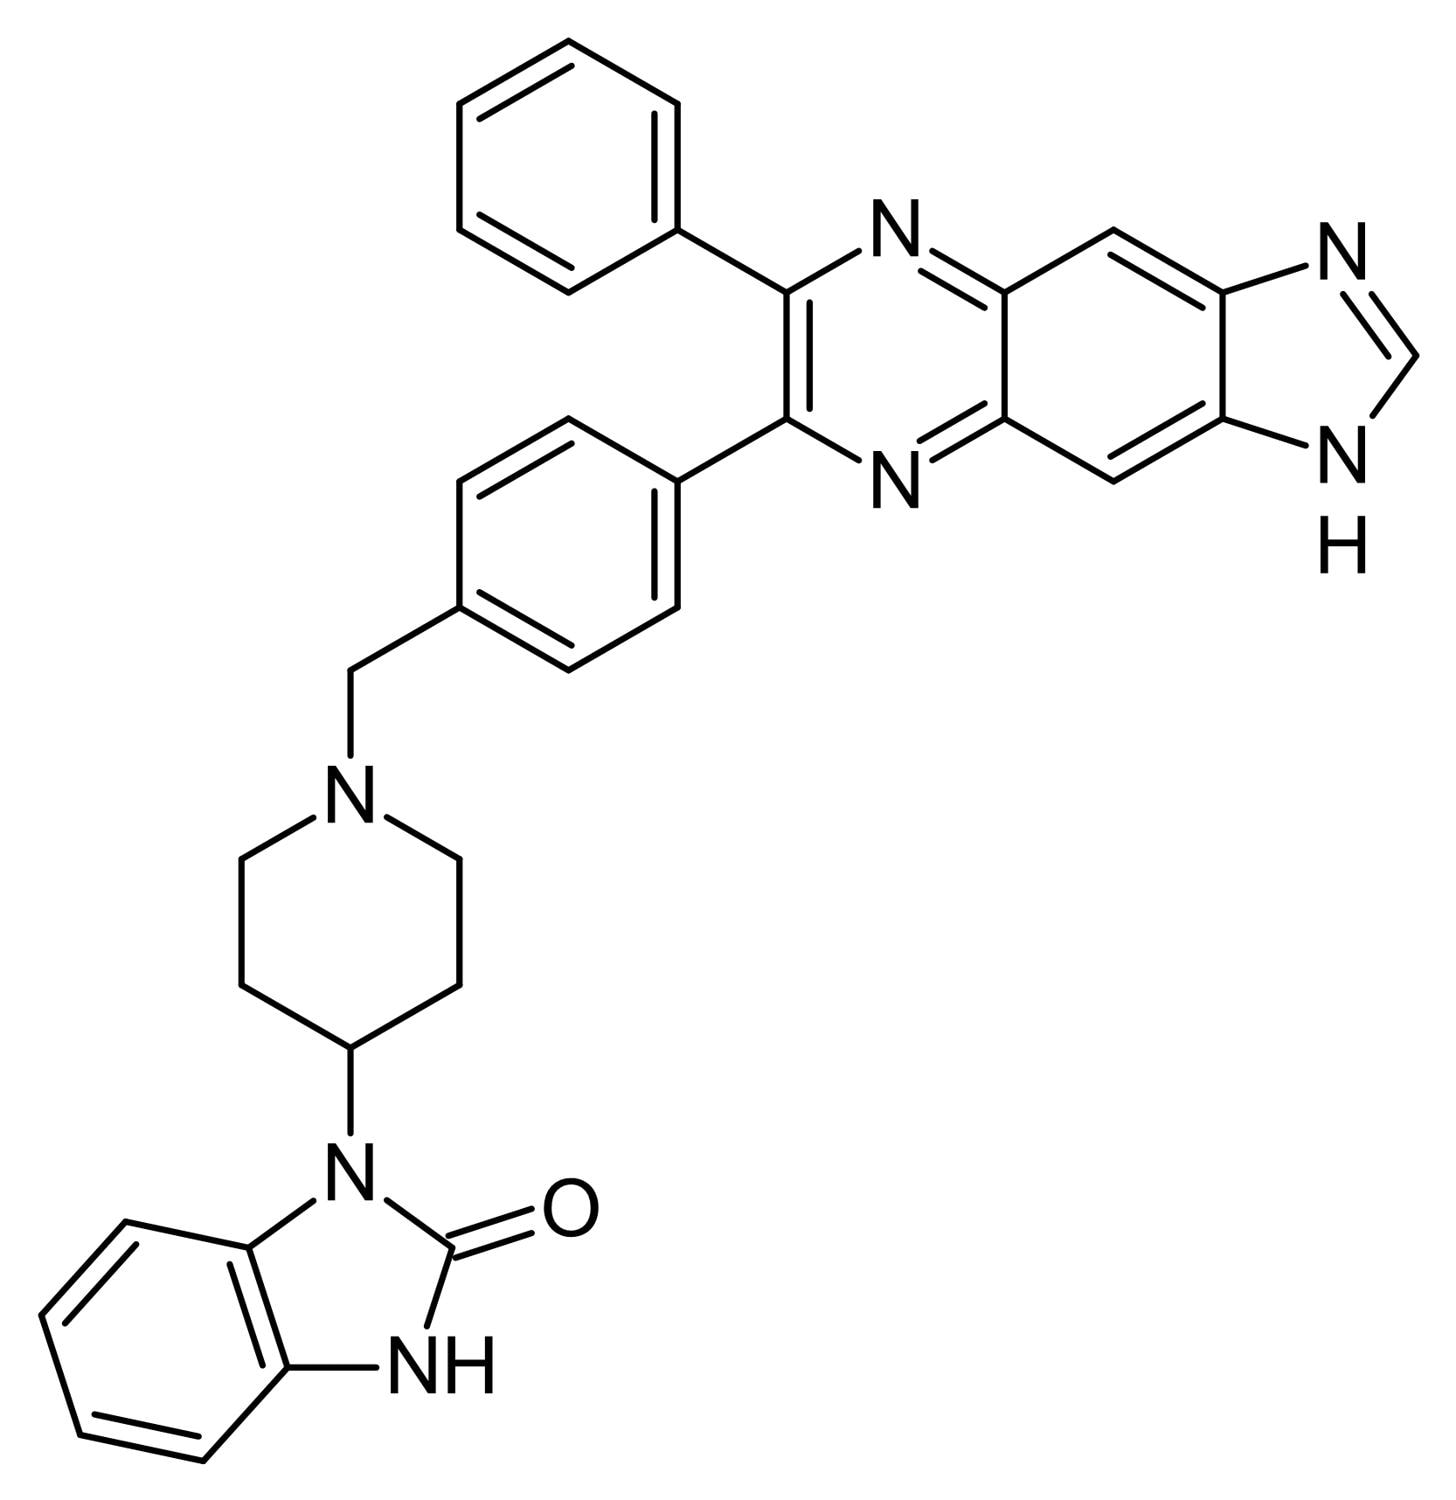 Chemical Structure - Akt Inhibitor (Akti-1/2), Akt1/2 kinase inhibitor (ab142088)